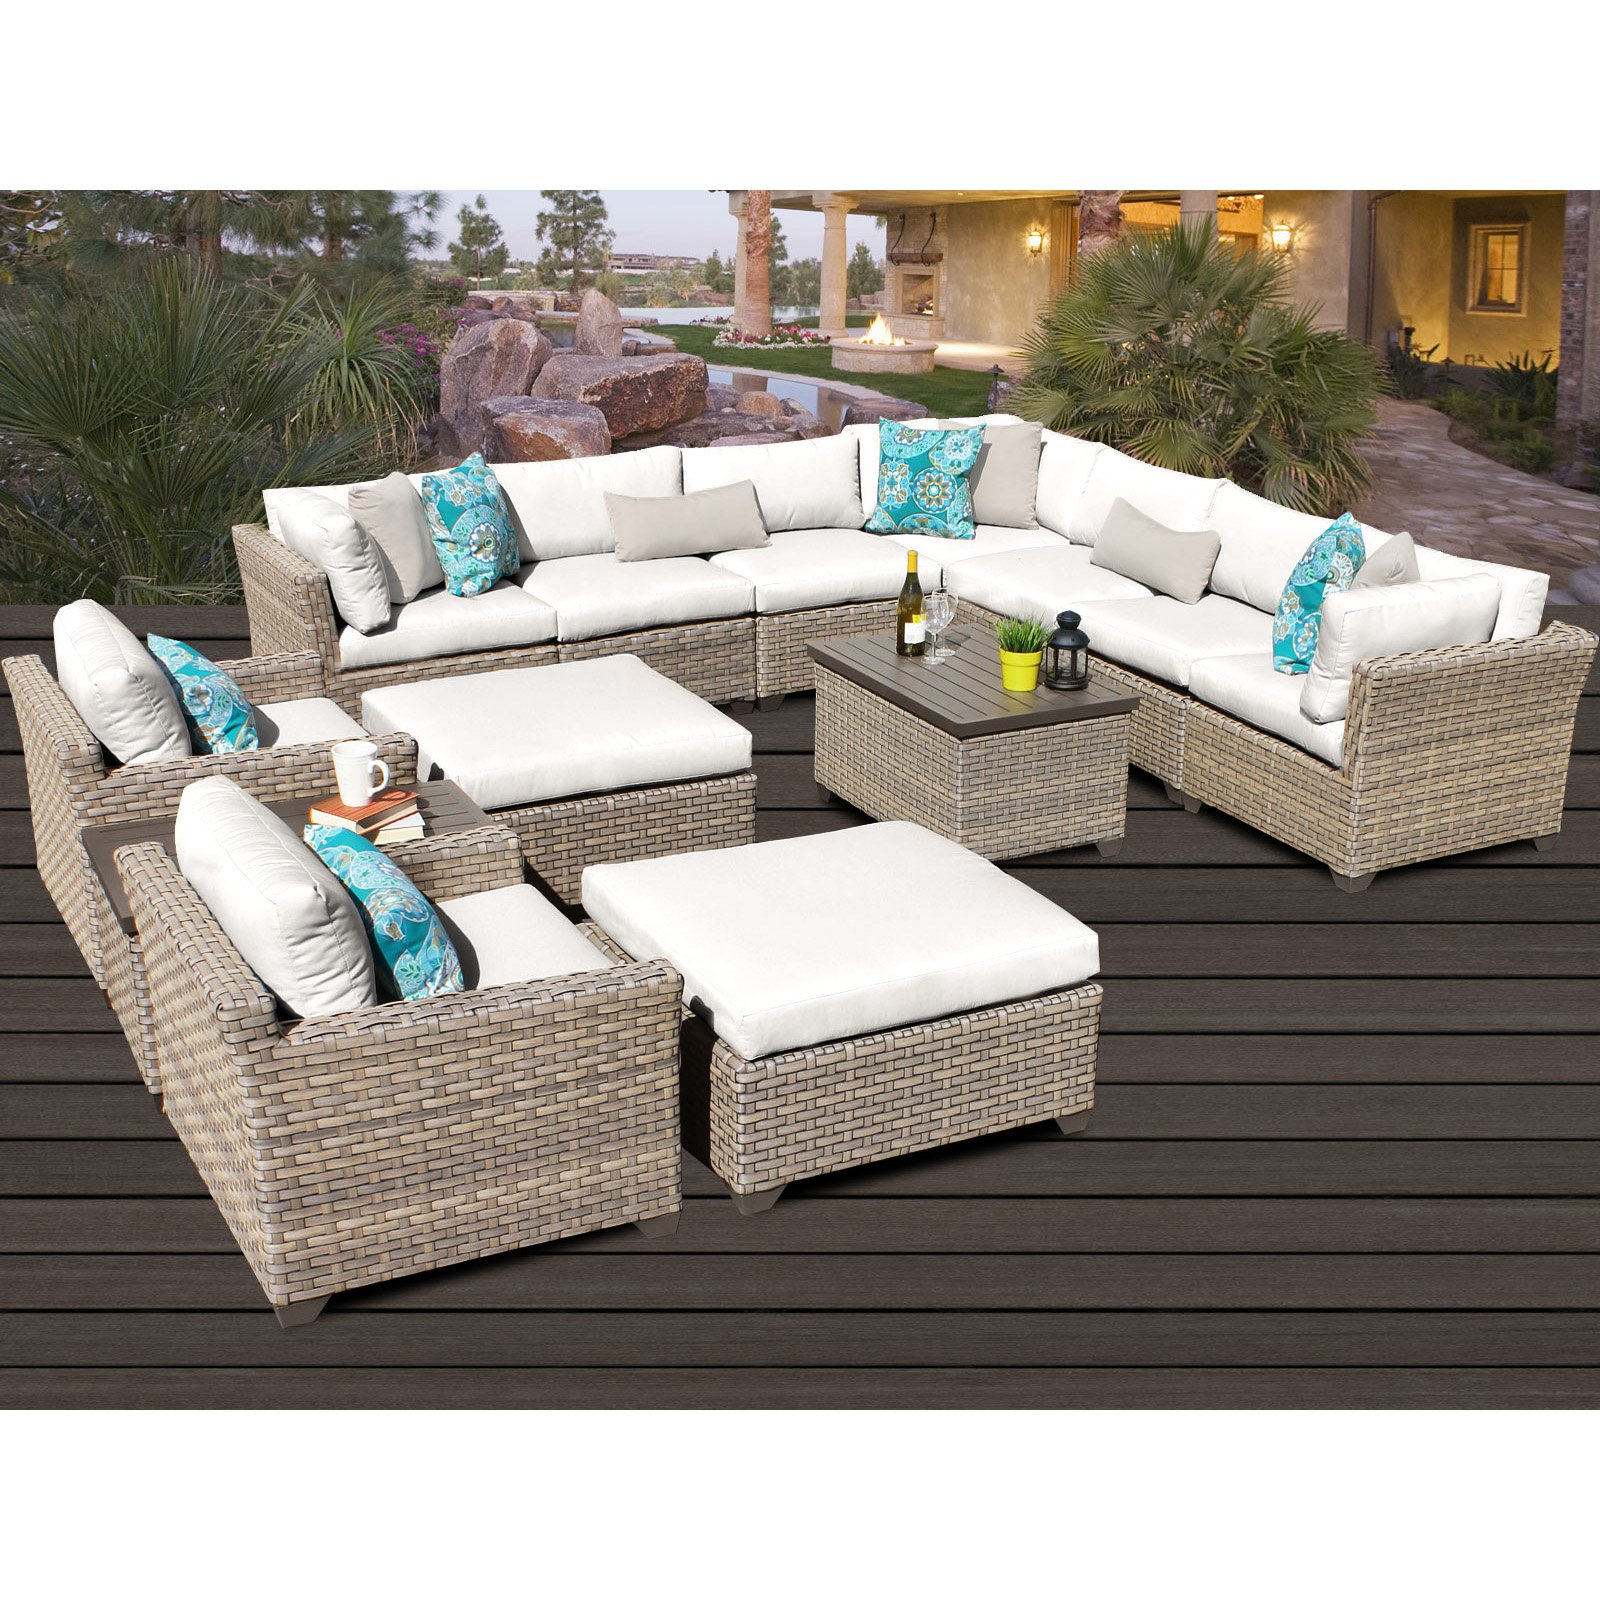 2020 Outdoor Tk Classics Monterey Wicker 13 Piece Patio Pertaining To Outdoor 13 Piece Wicker Patio Sets With Cushions (View 2 of 25)